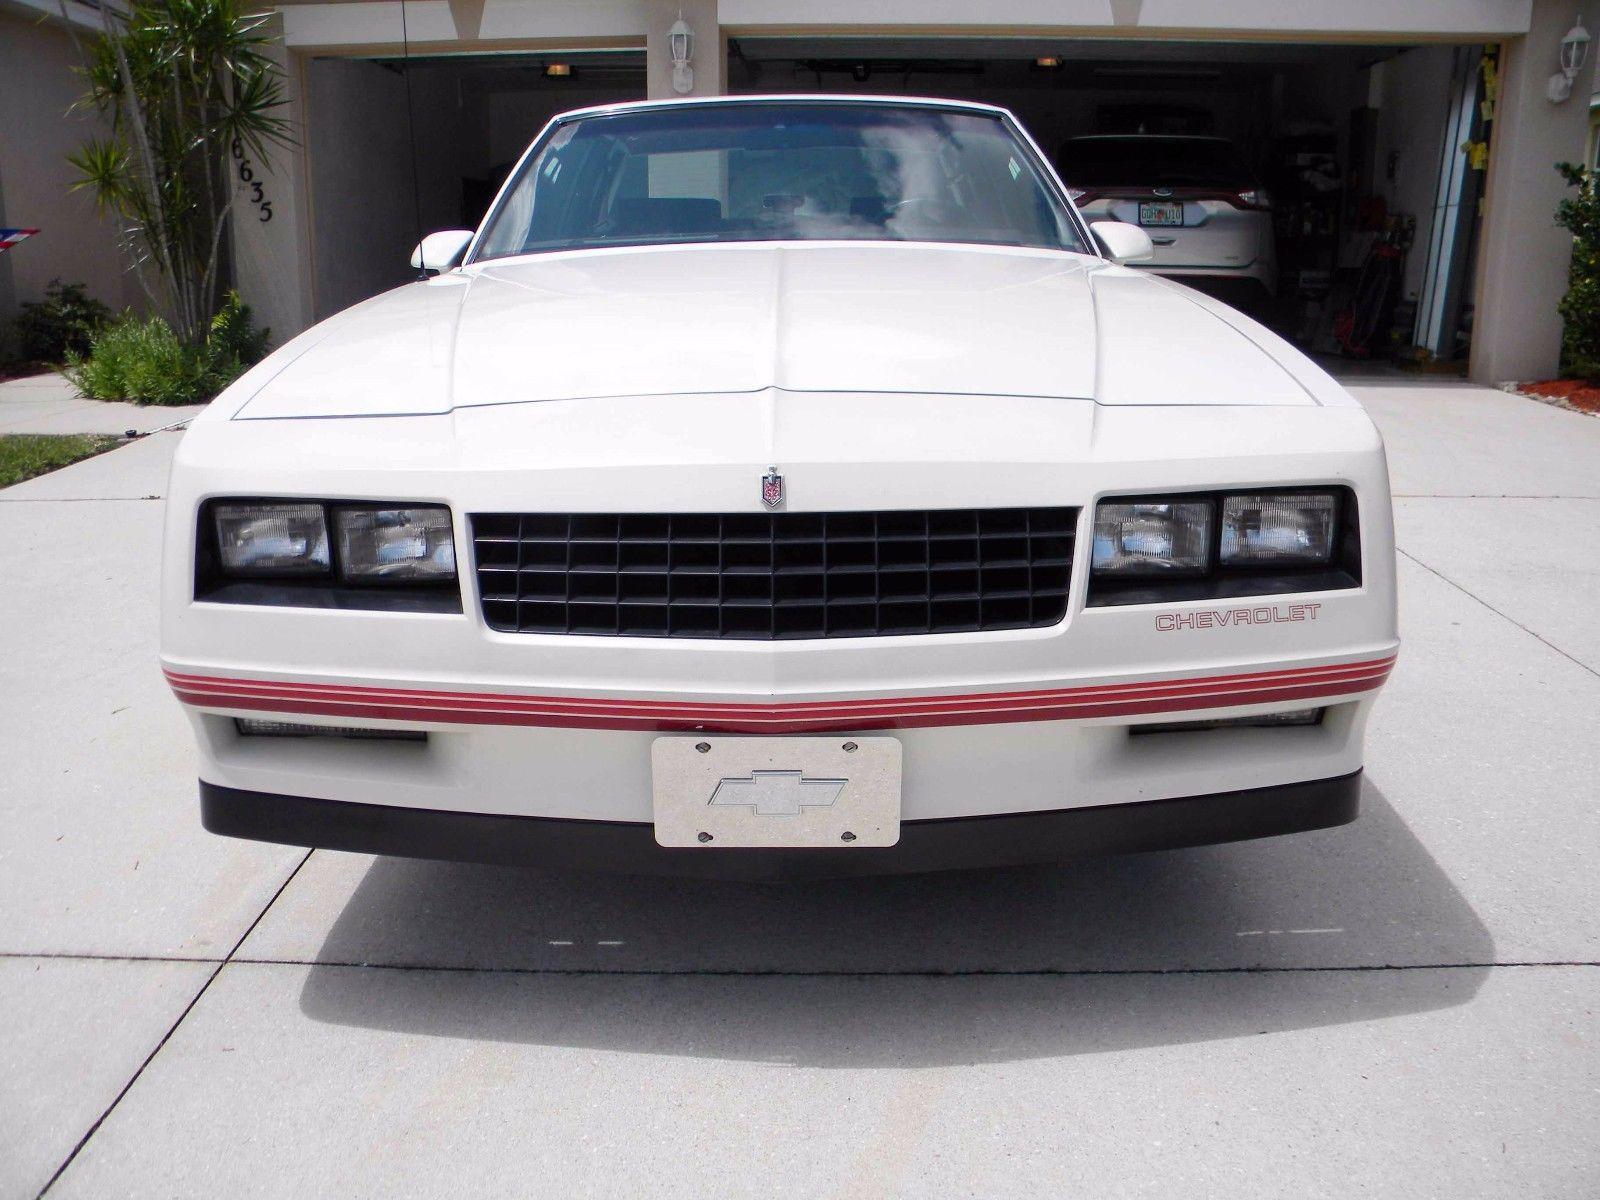 1987 Chevrolet Monte Carlo SS Front End